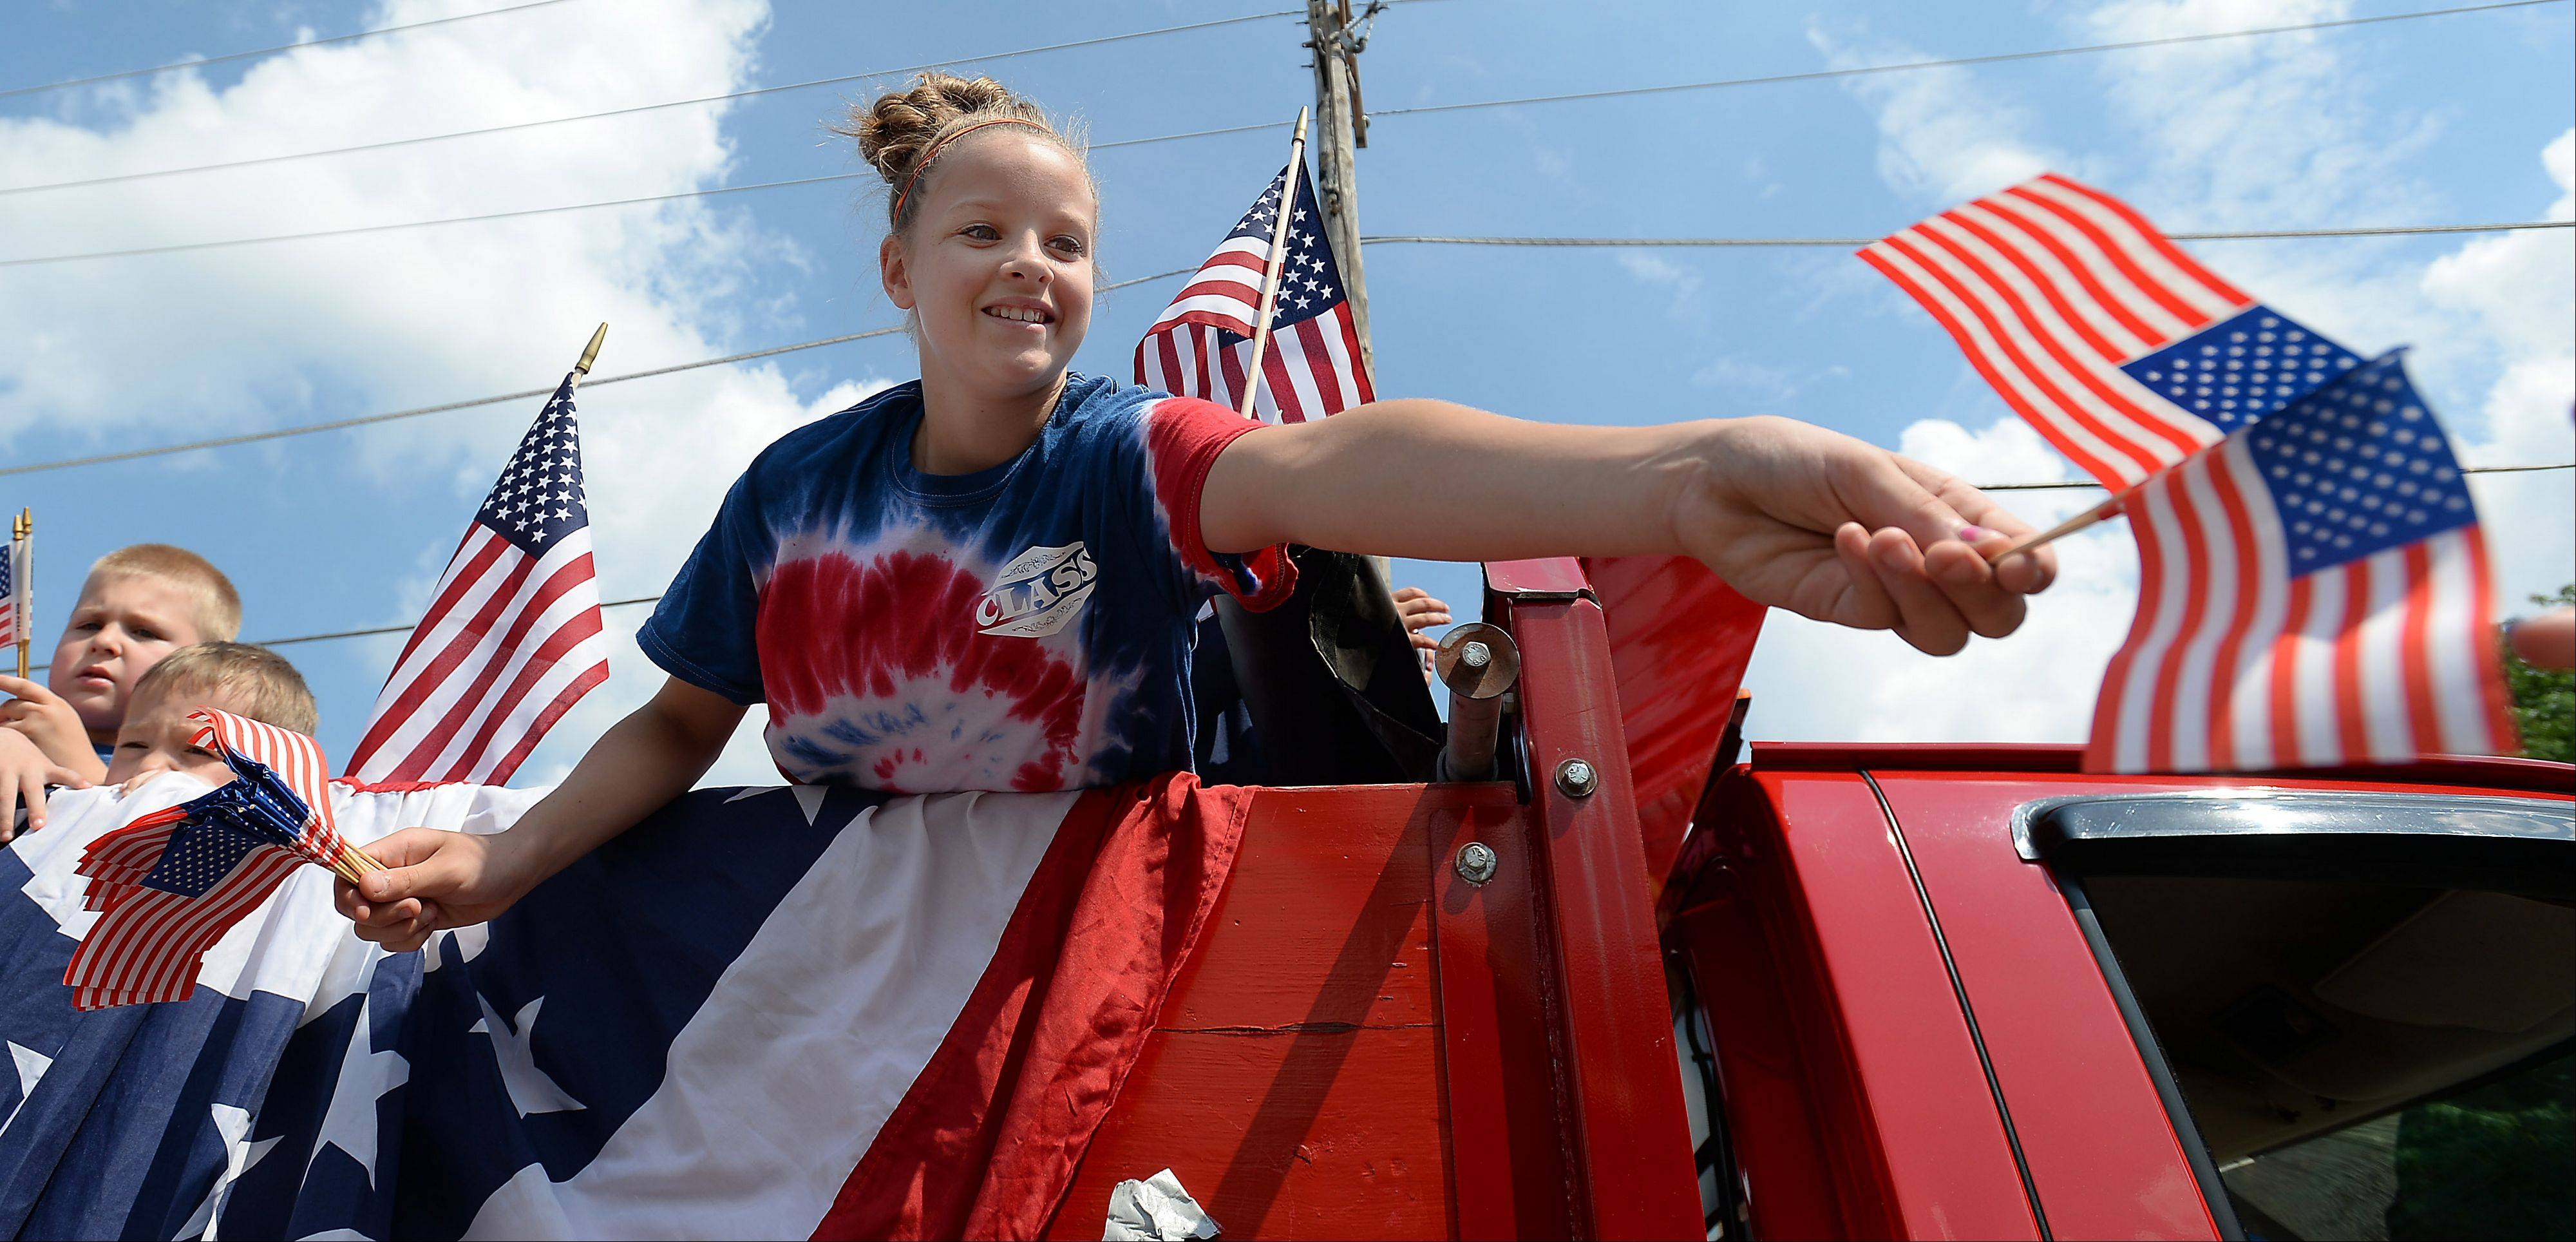 Sarah Hilliard, 13, of Rolling Meadows hands out flags during the Palatine Fourth of July parade on Saturday.